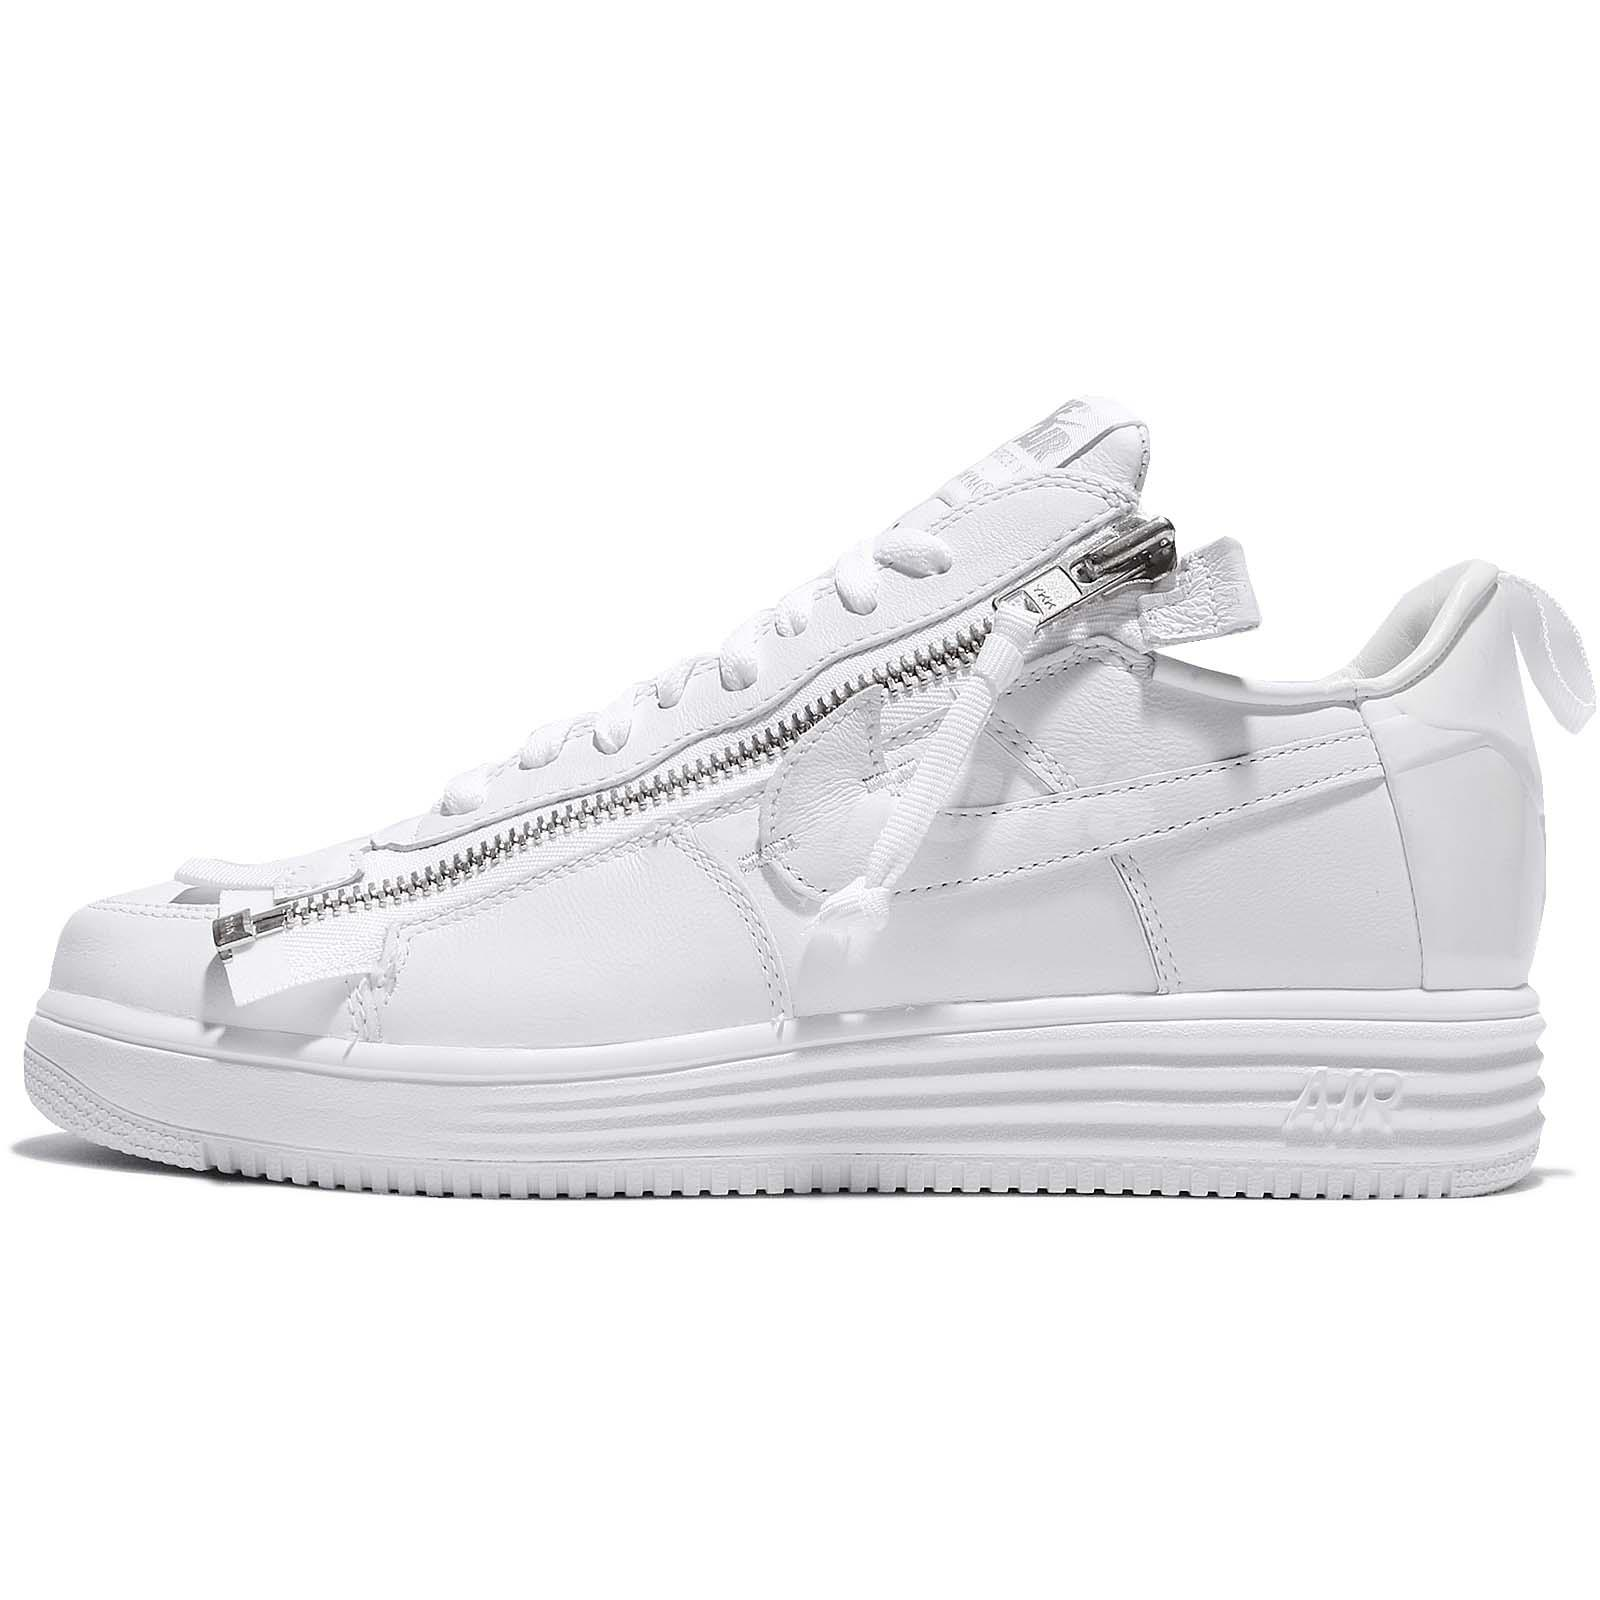 best website 5d621 ae78d ... Nike ACRONYM X Lunar Force 1 AF100 Triple WHite ComplexCon Rare AJ6247- 100 ...